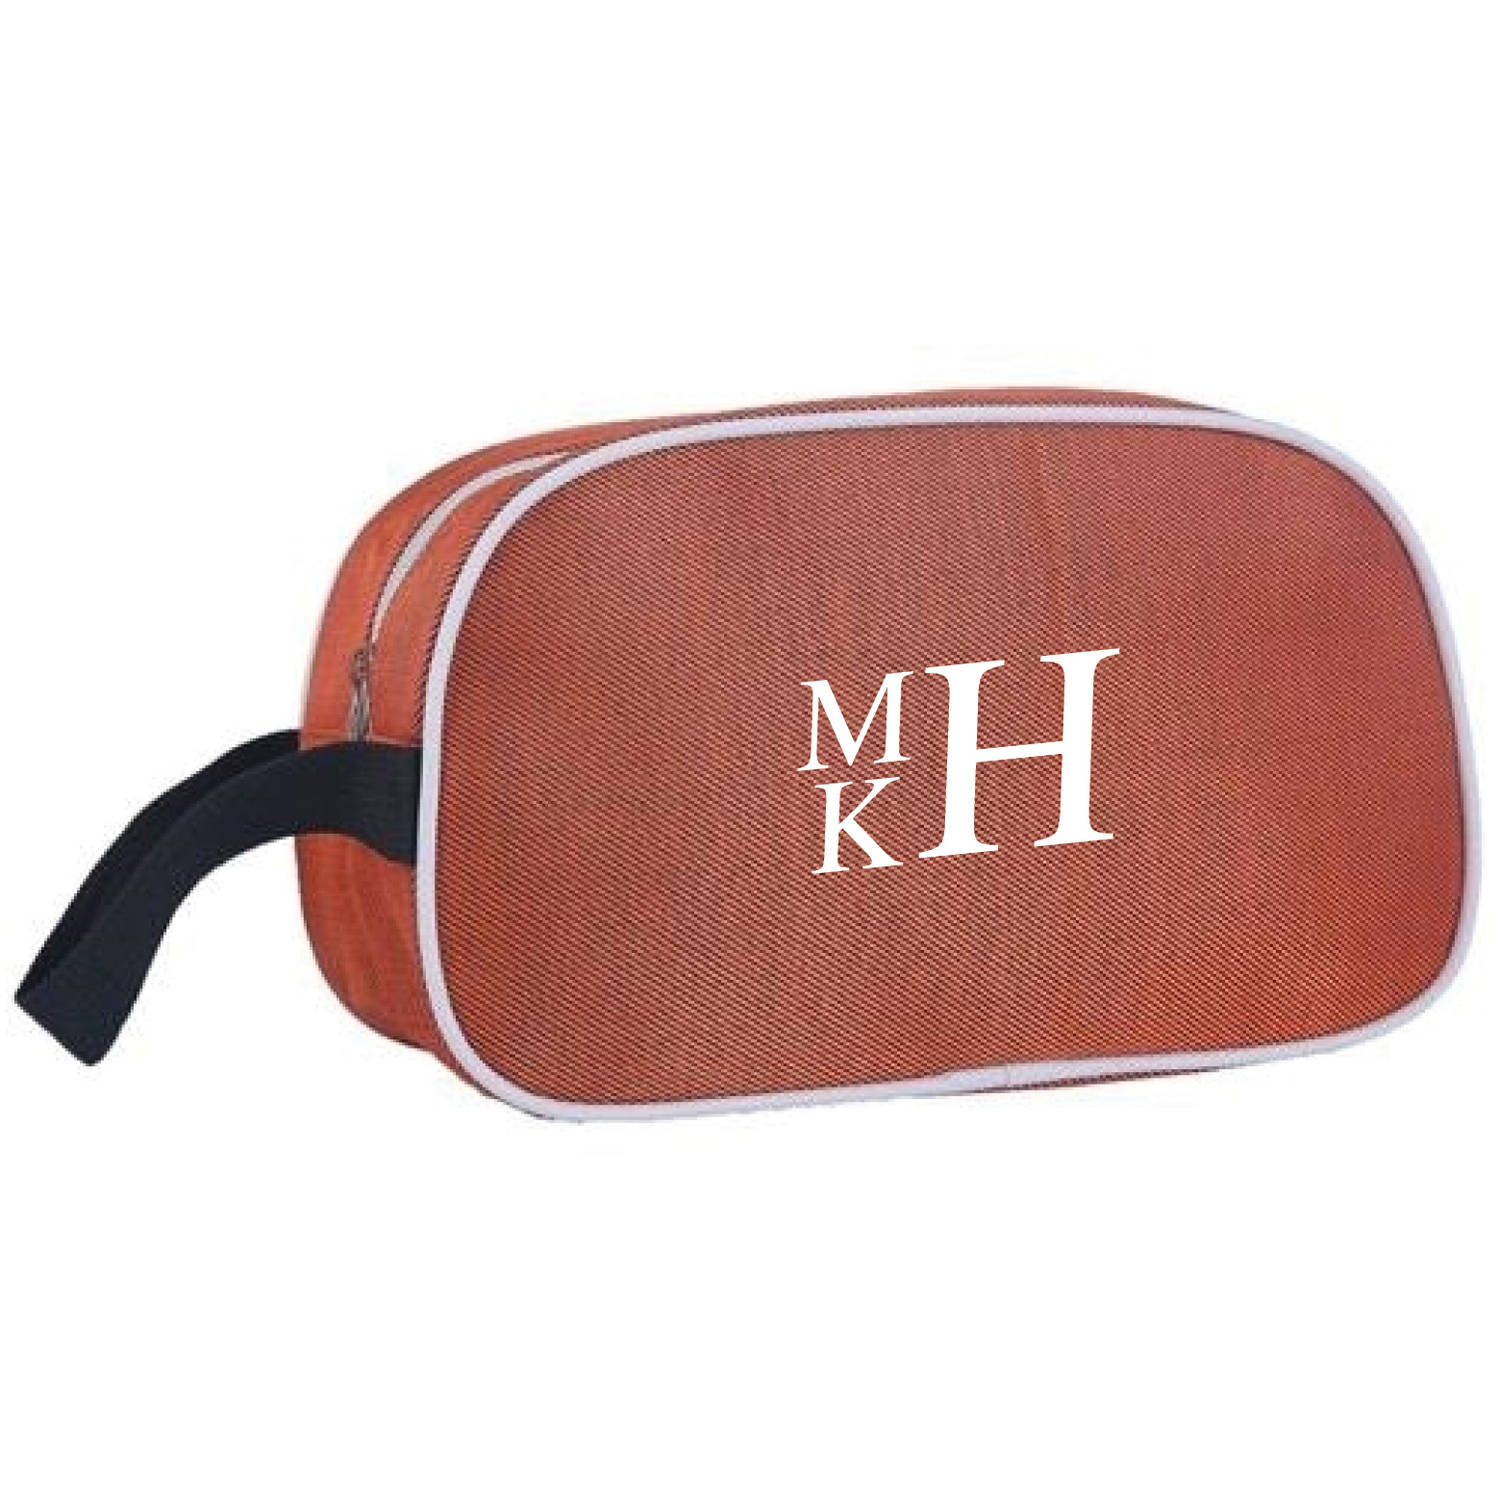 Personalized Monogram Dopp Kit